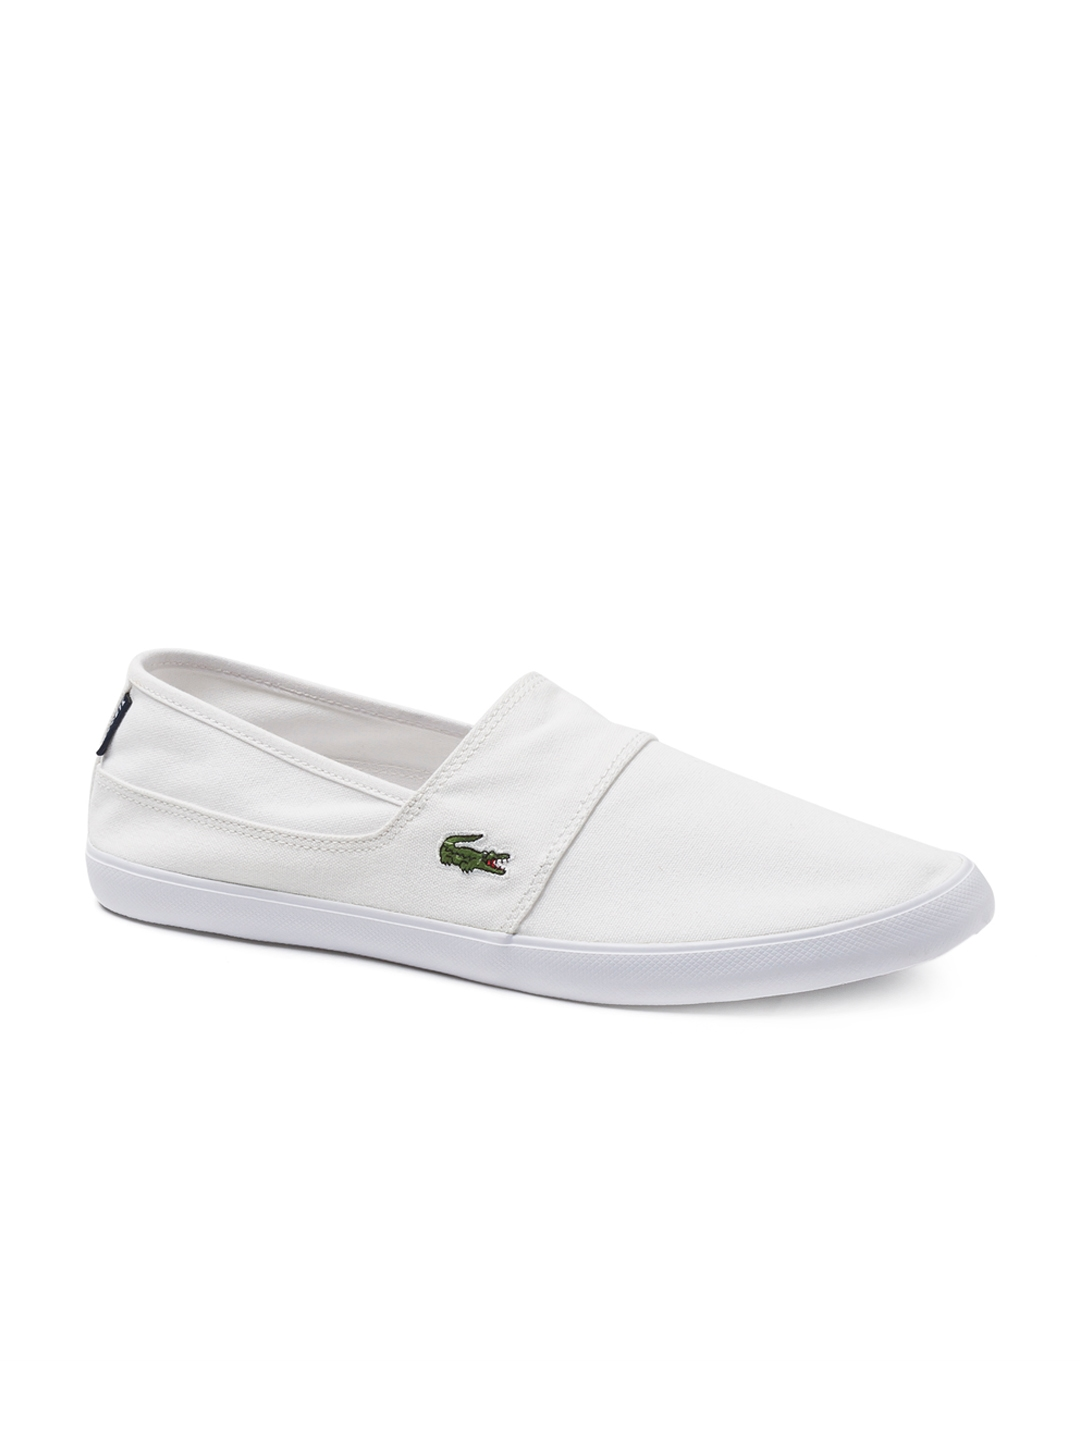 aa2c123358e31 Buy Lacoste Men White Slip On Shoes - Casual Shoes for Men 4304640 ...